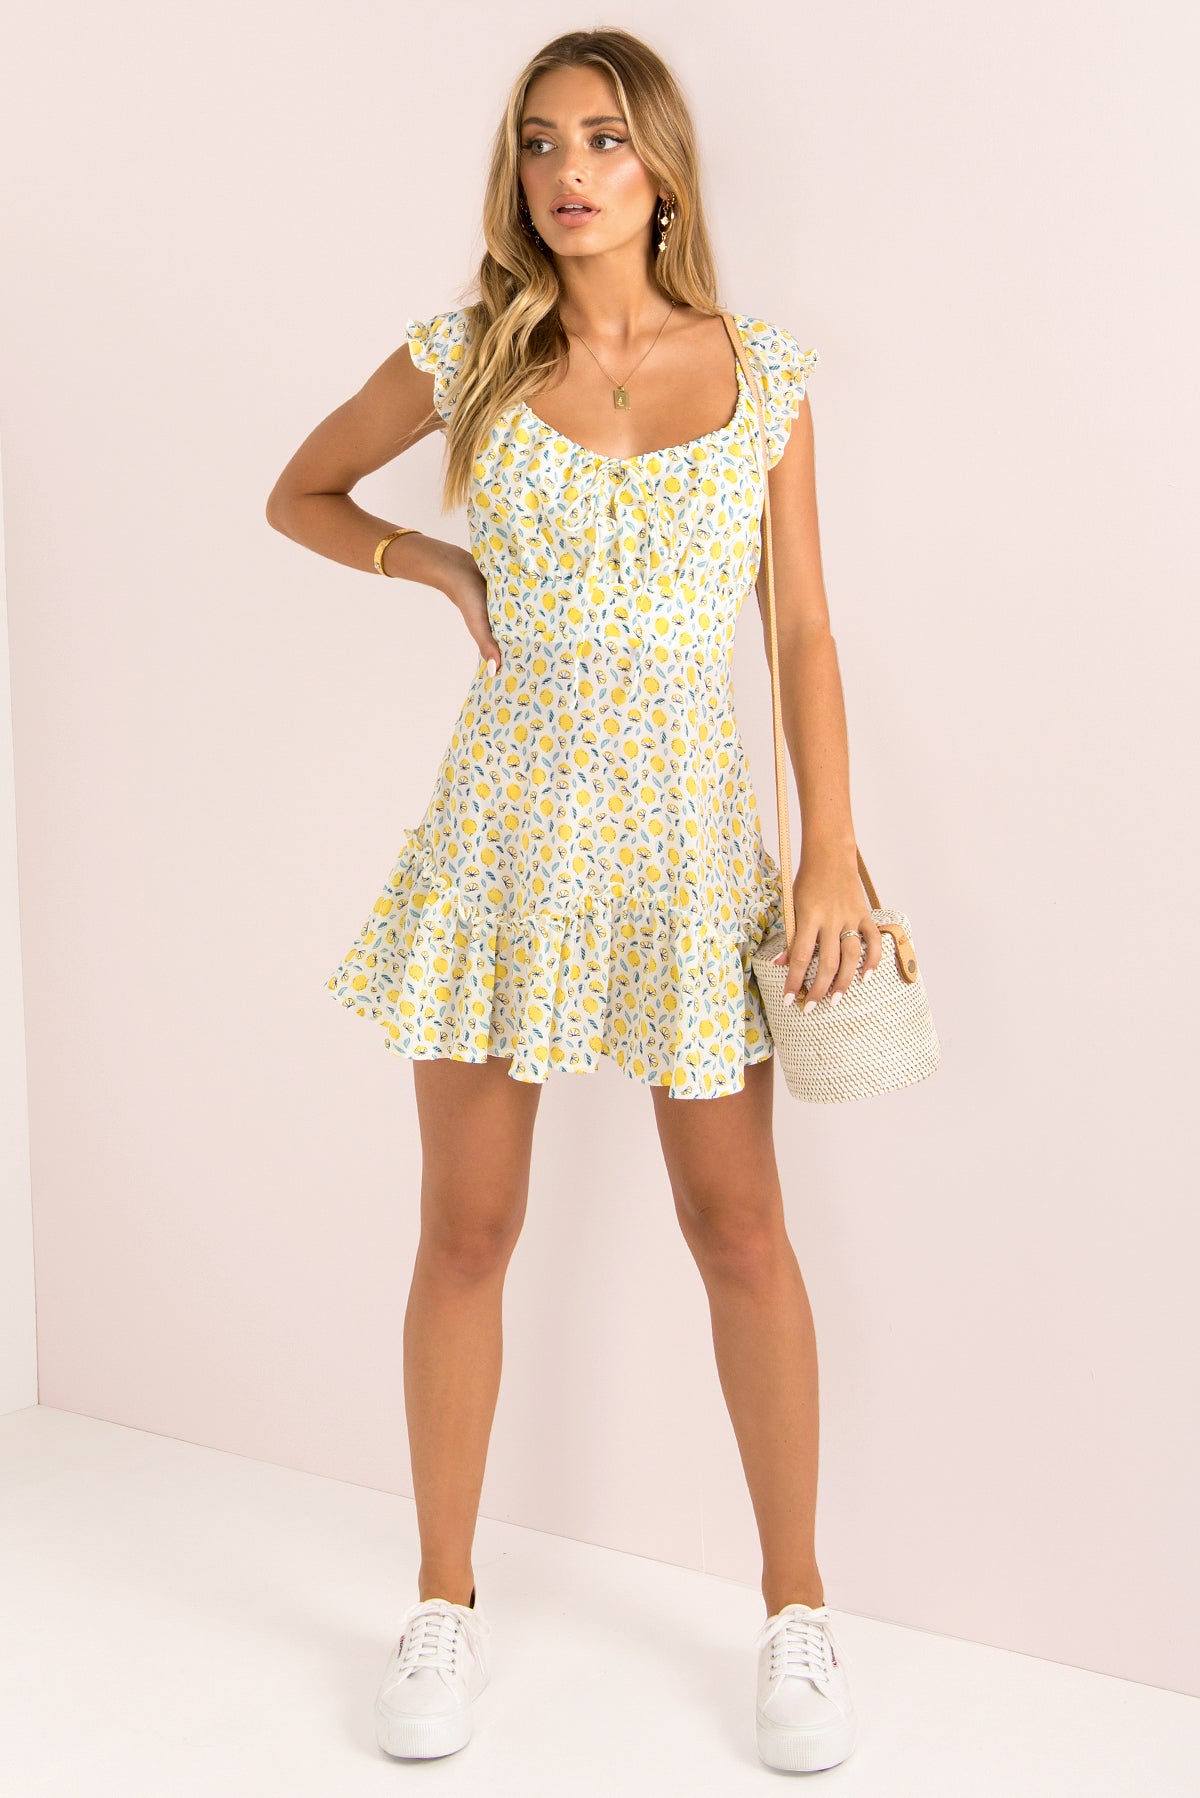 Ellie Dress / Lemon